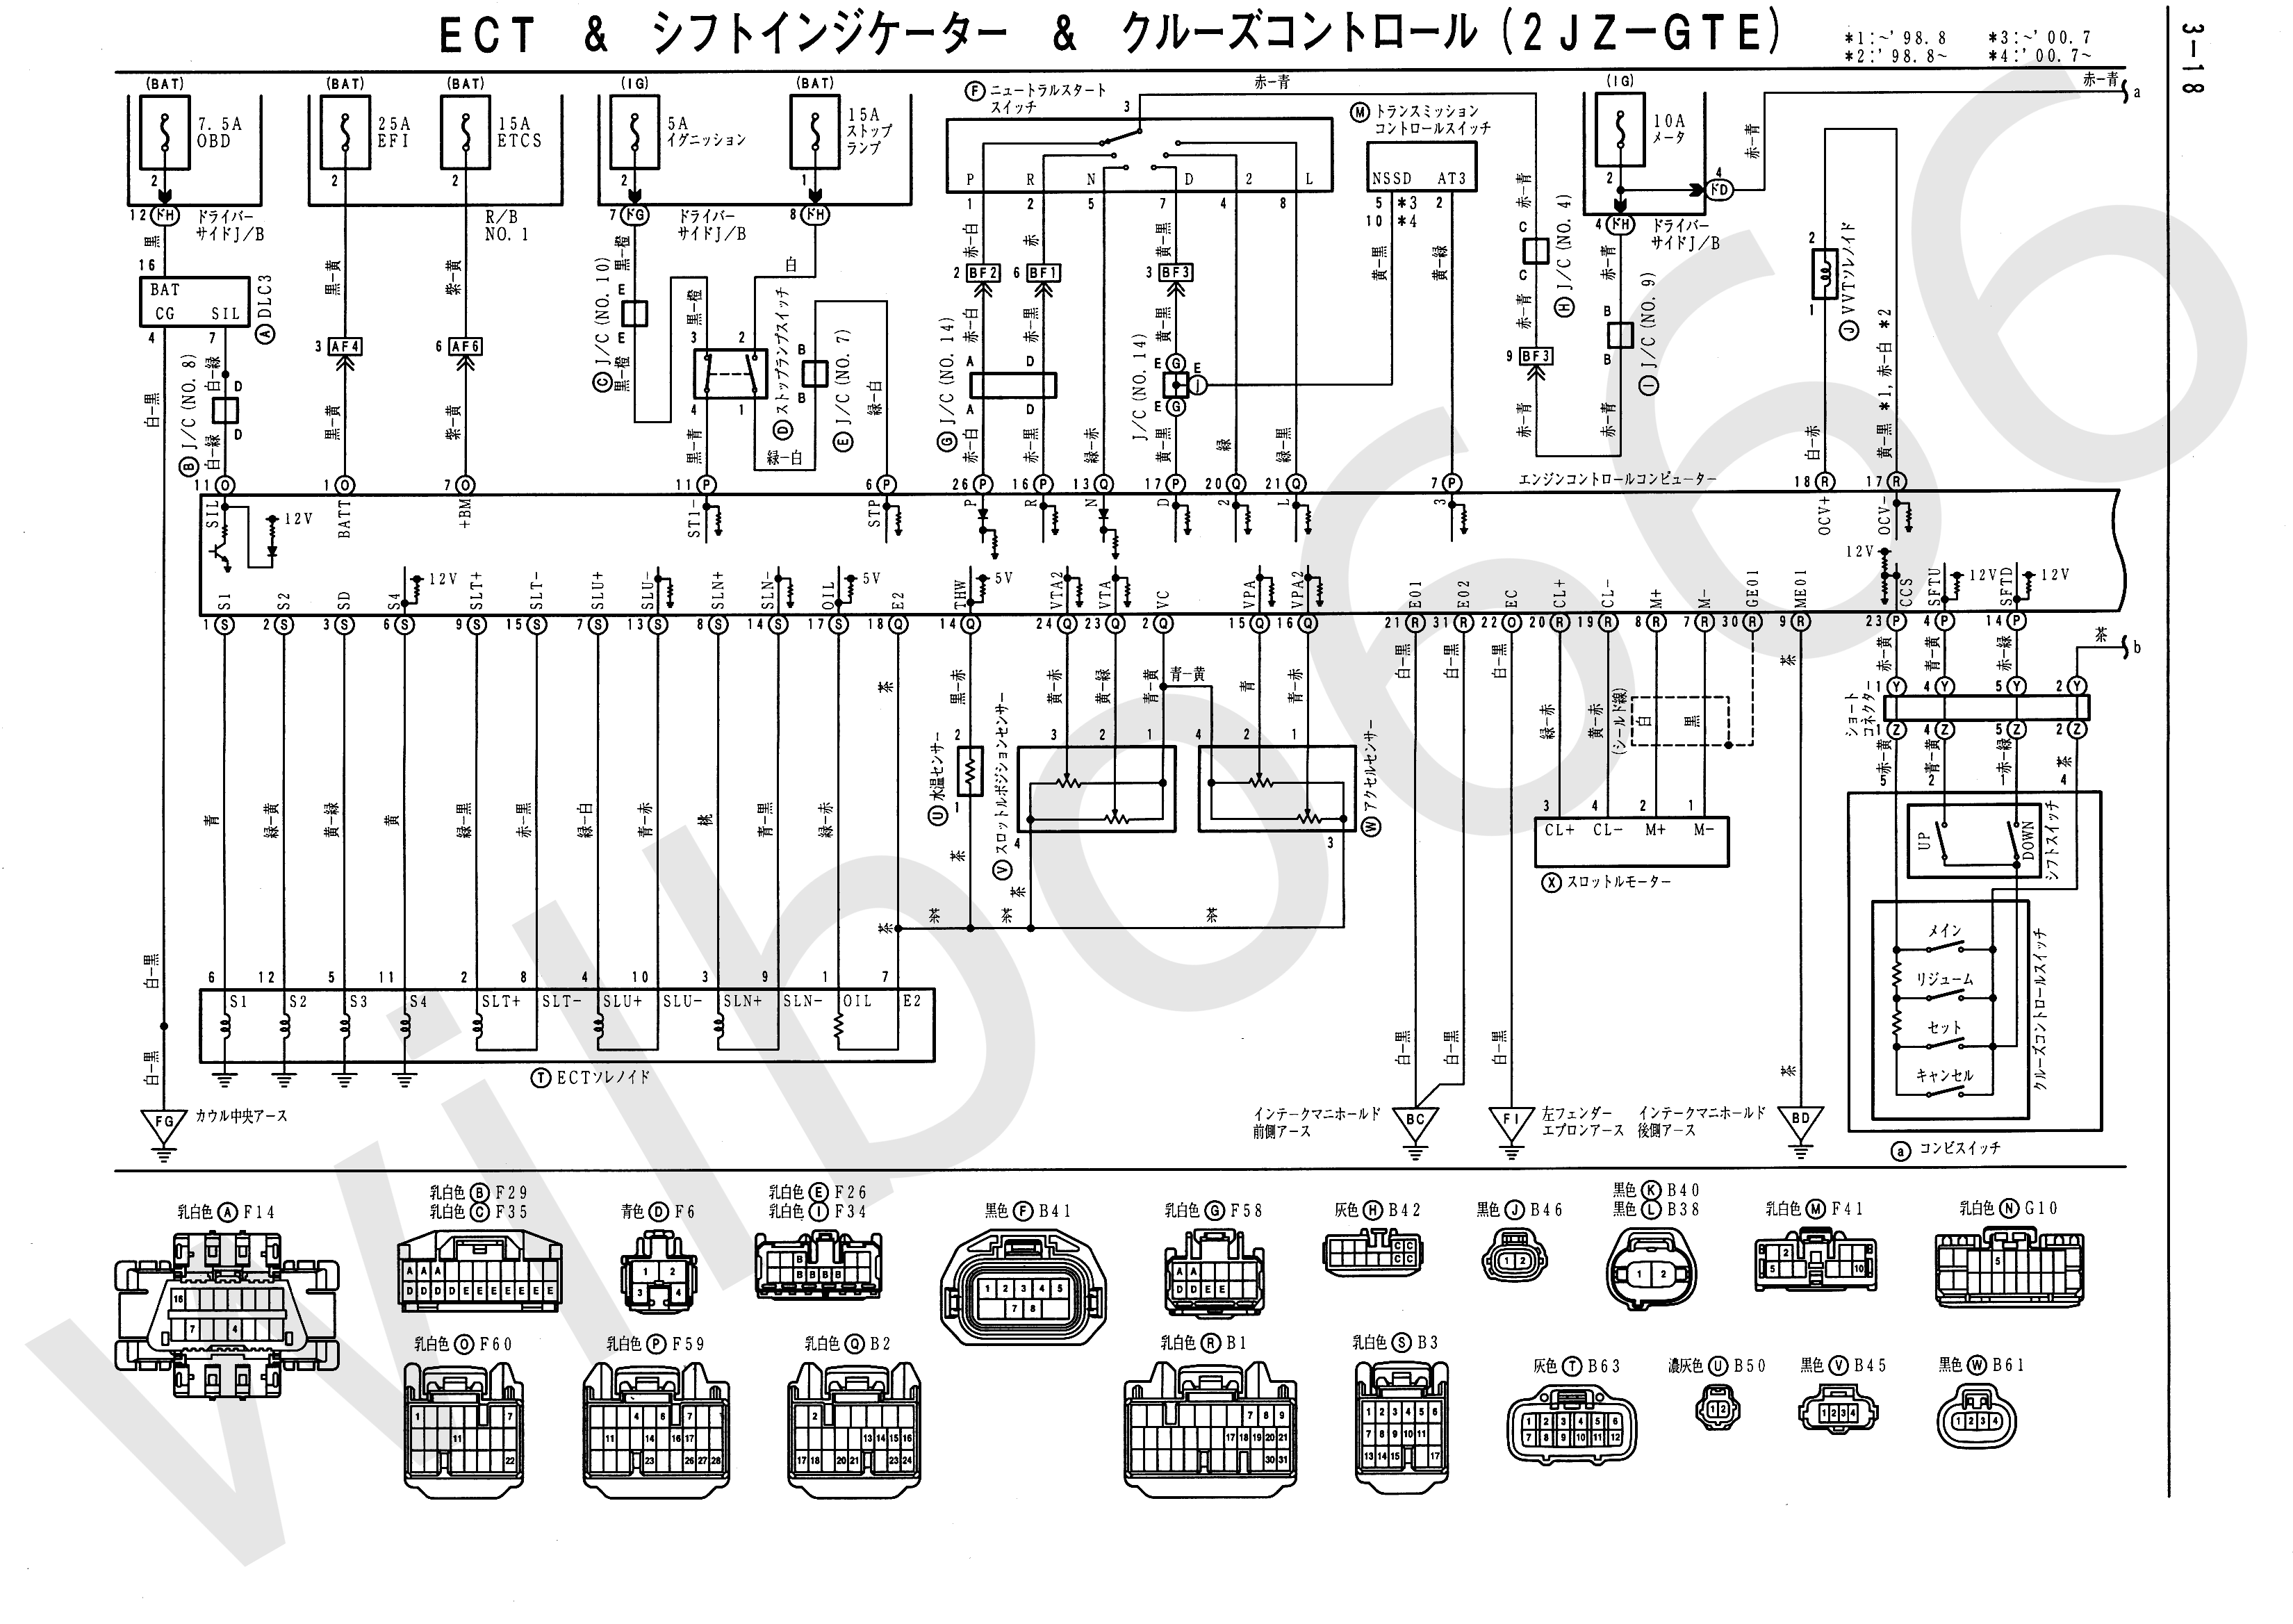 JZS161 Electrical Wiring Diagram 6748505 3 18 wilbo666 2jz gte vvti jzs161 aristo engine wiring toyota highlander ecu wiring diagram at reclaimingppi.co